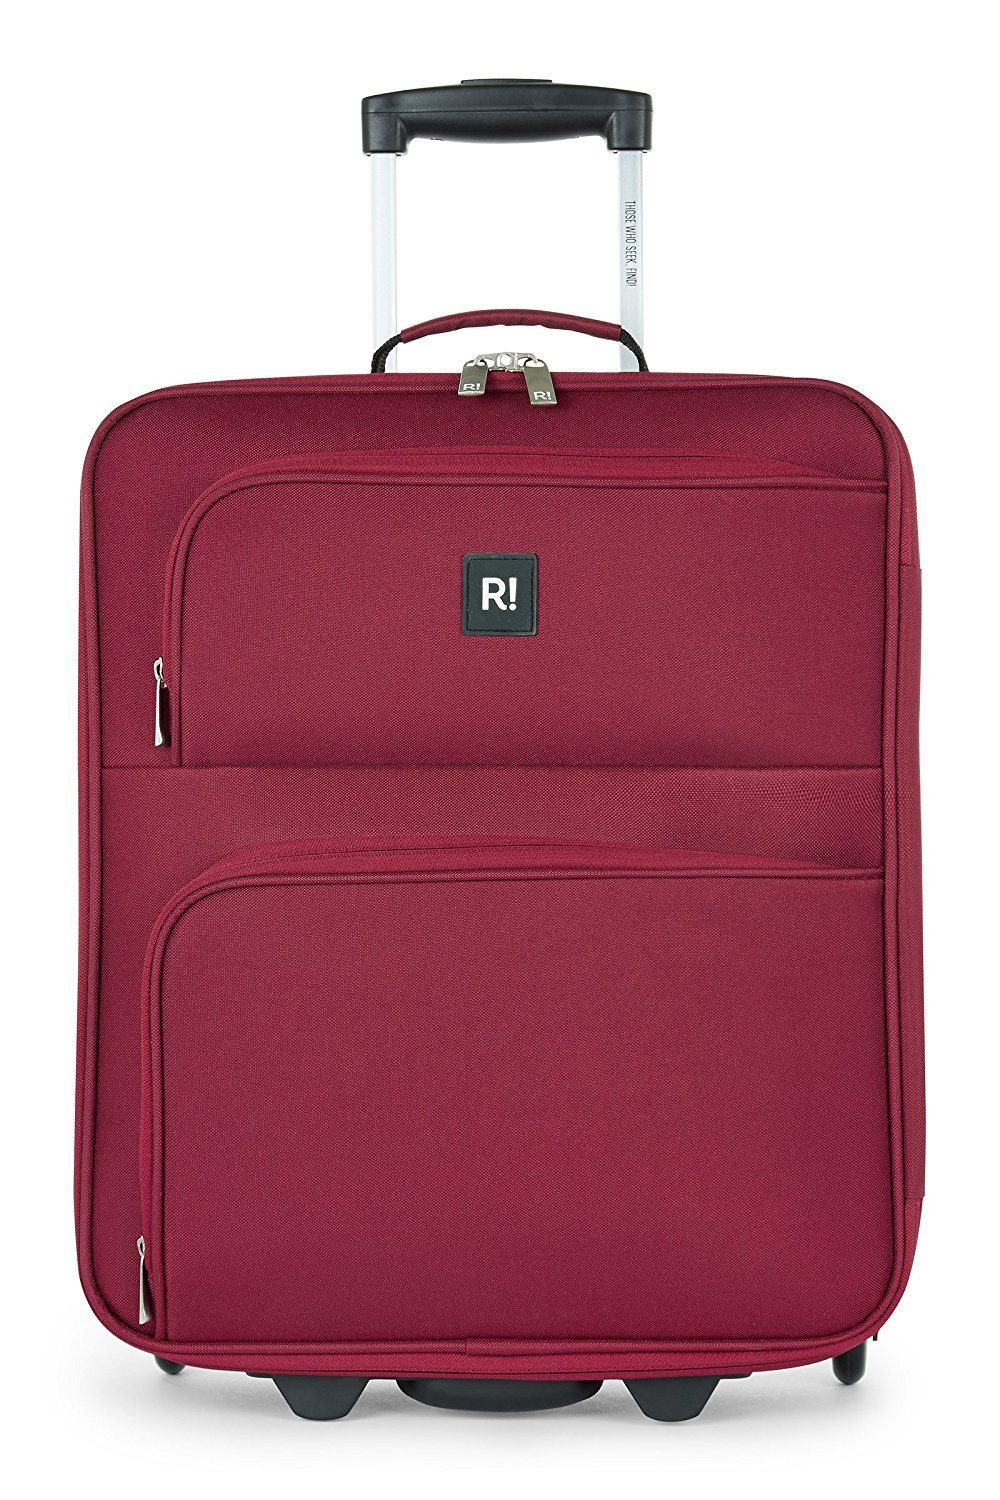 REVELATION Suitcase Alex Case red